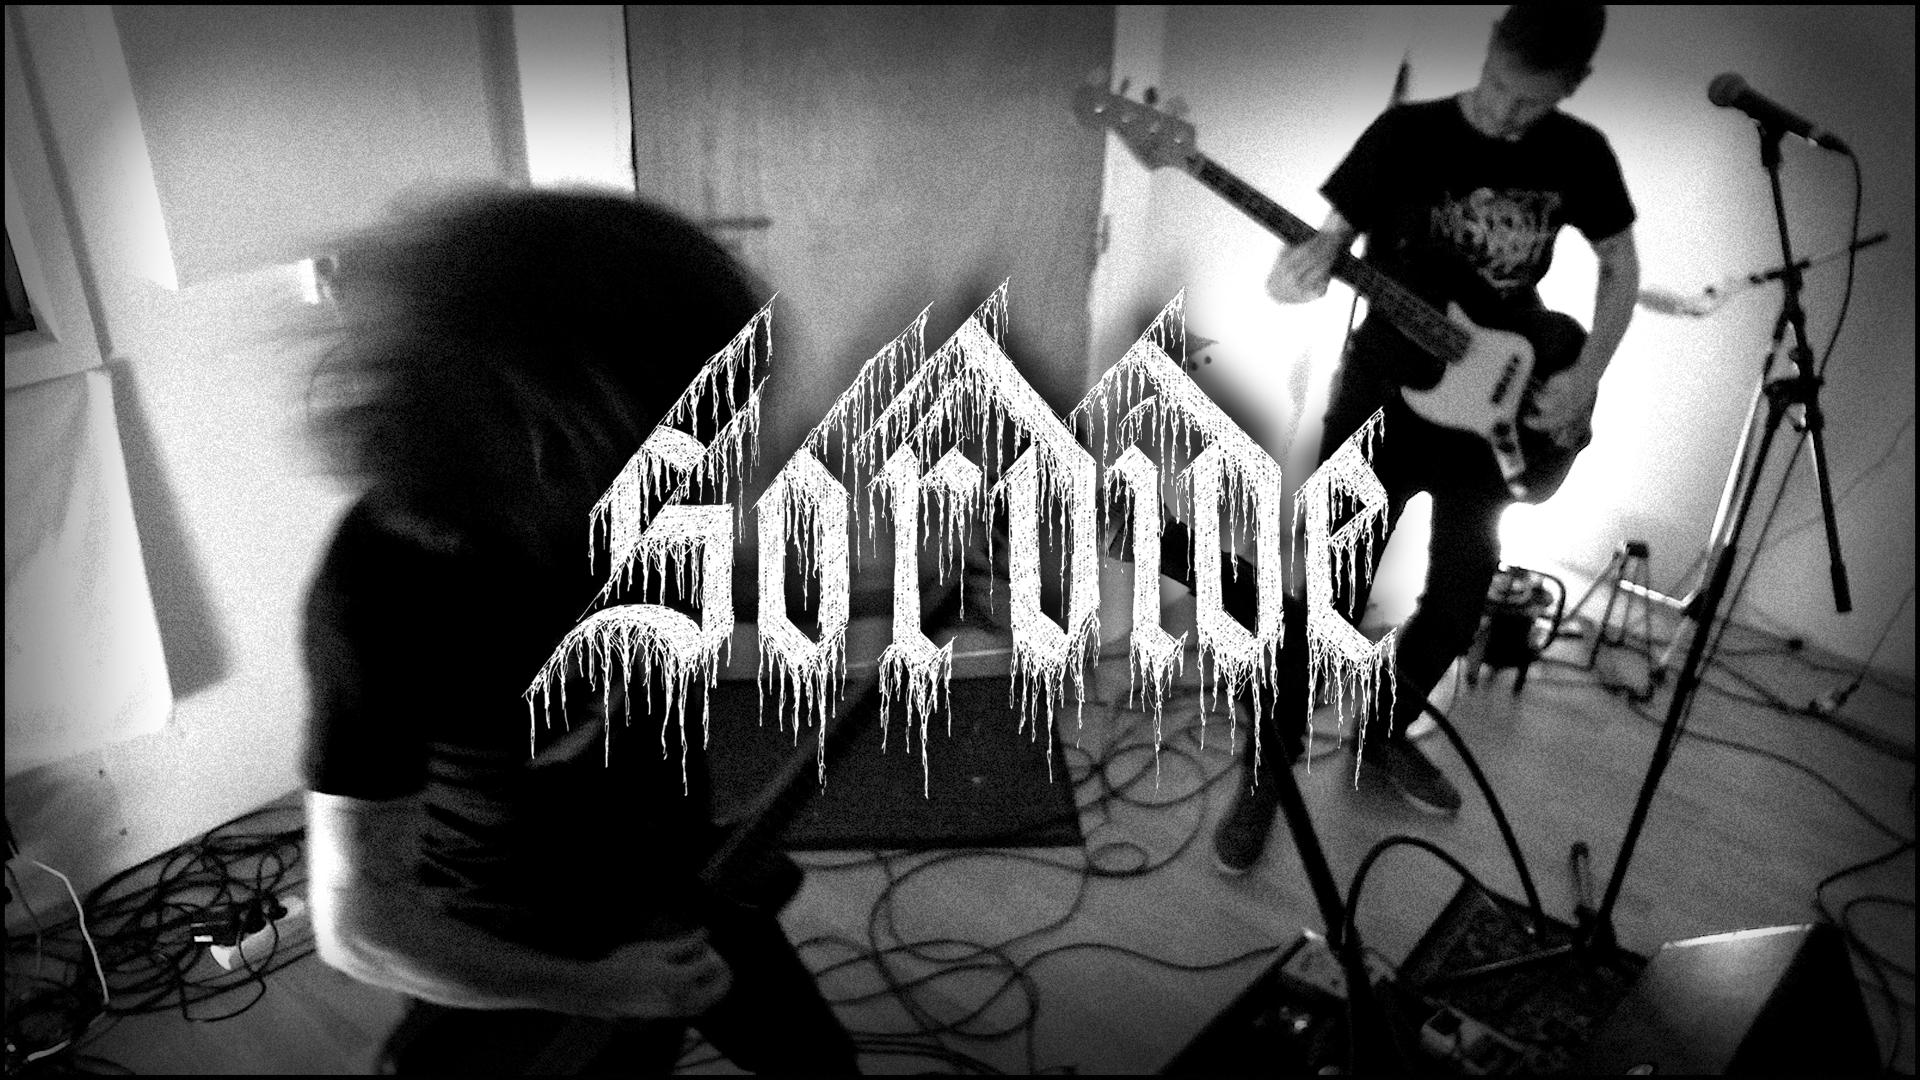 Sordide – Metal Doom Sludge from Rouen, France